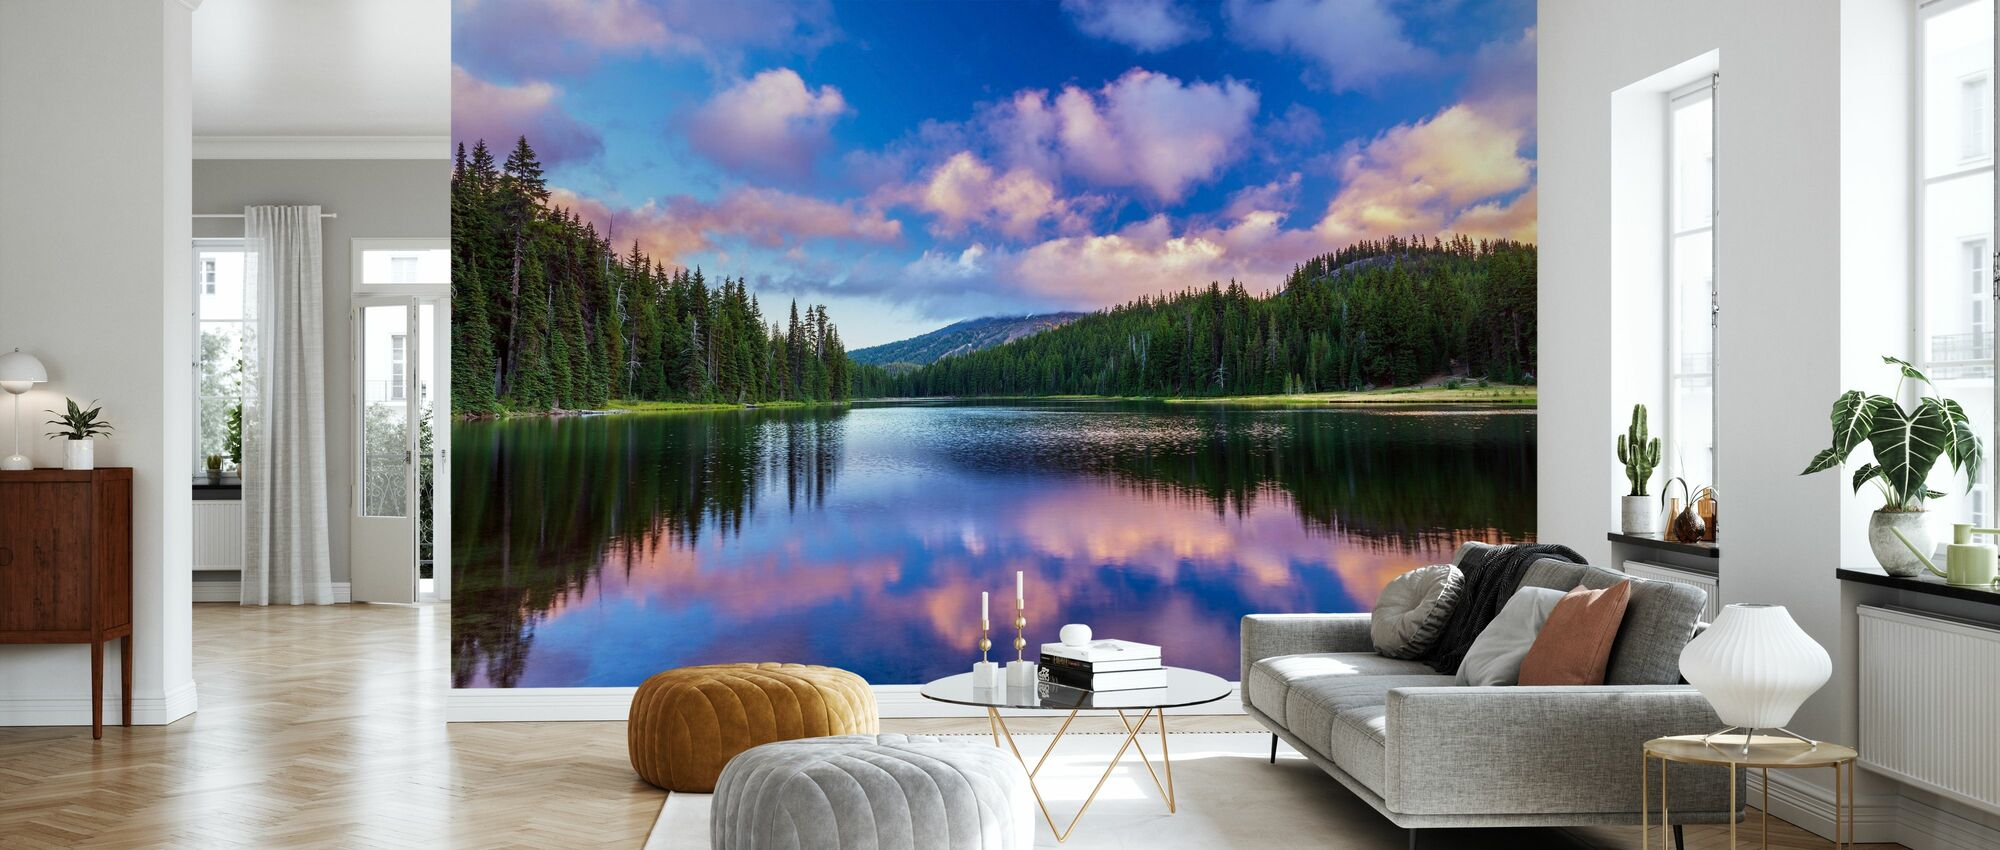 Todd Lake Bend - Wallpaper - Living Room